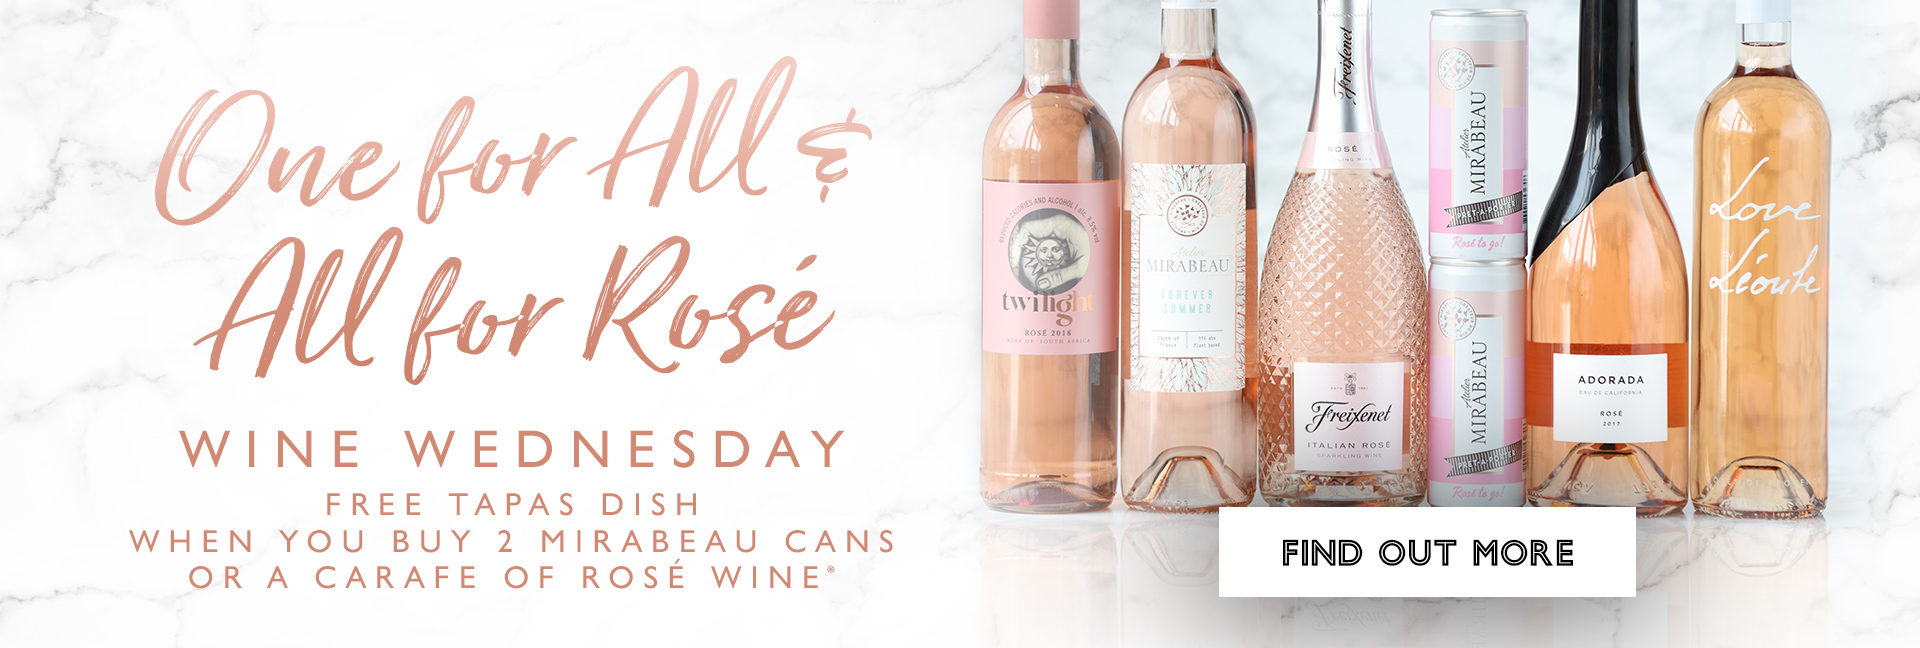 Wine Wednesdays at All Bar One Chester